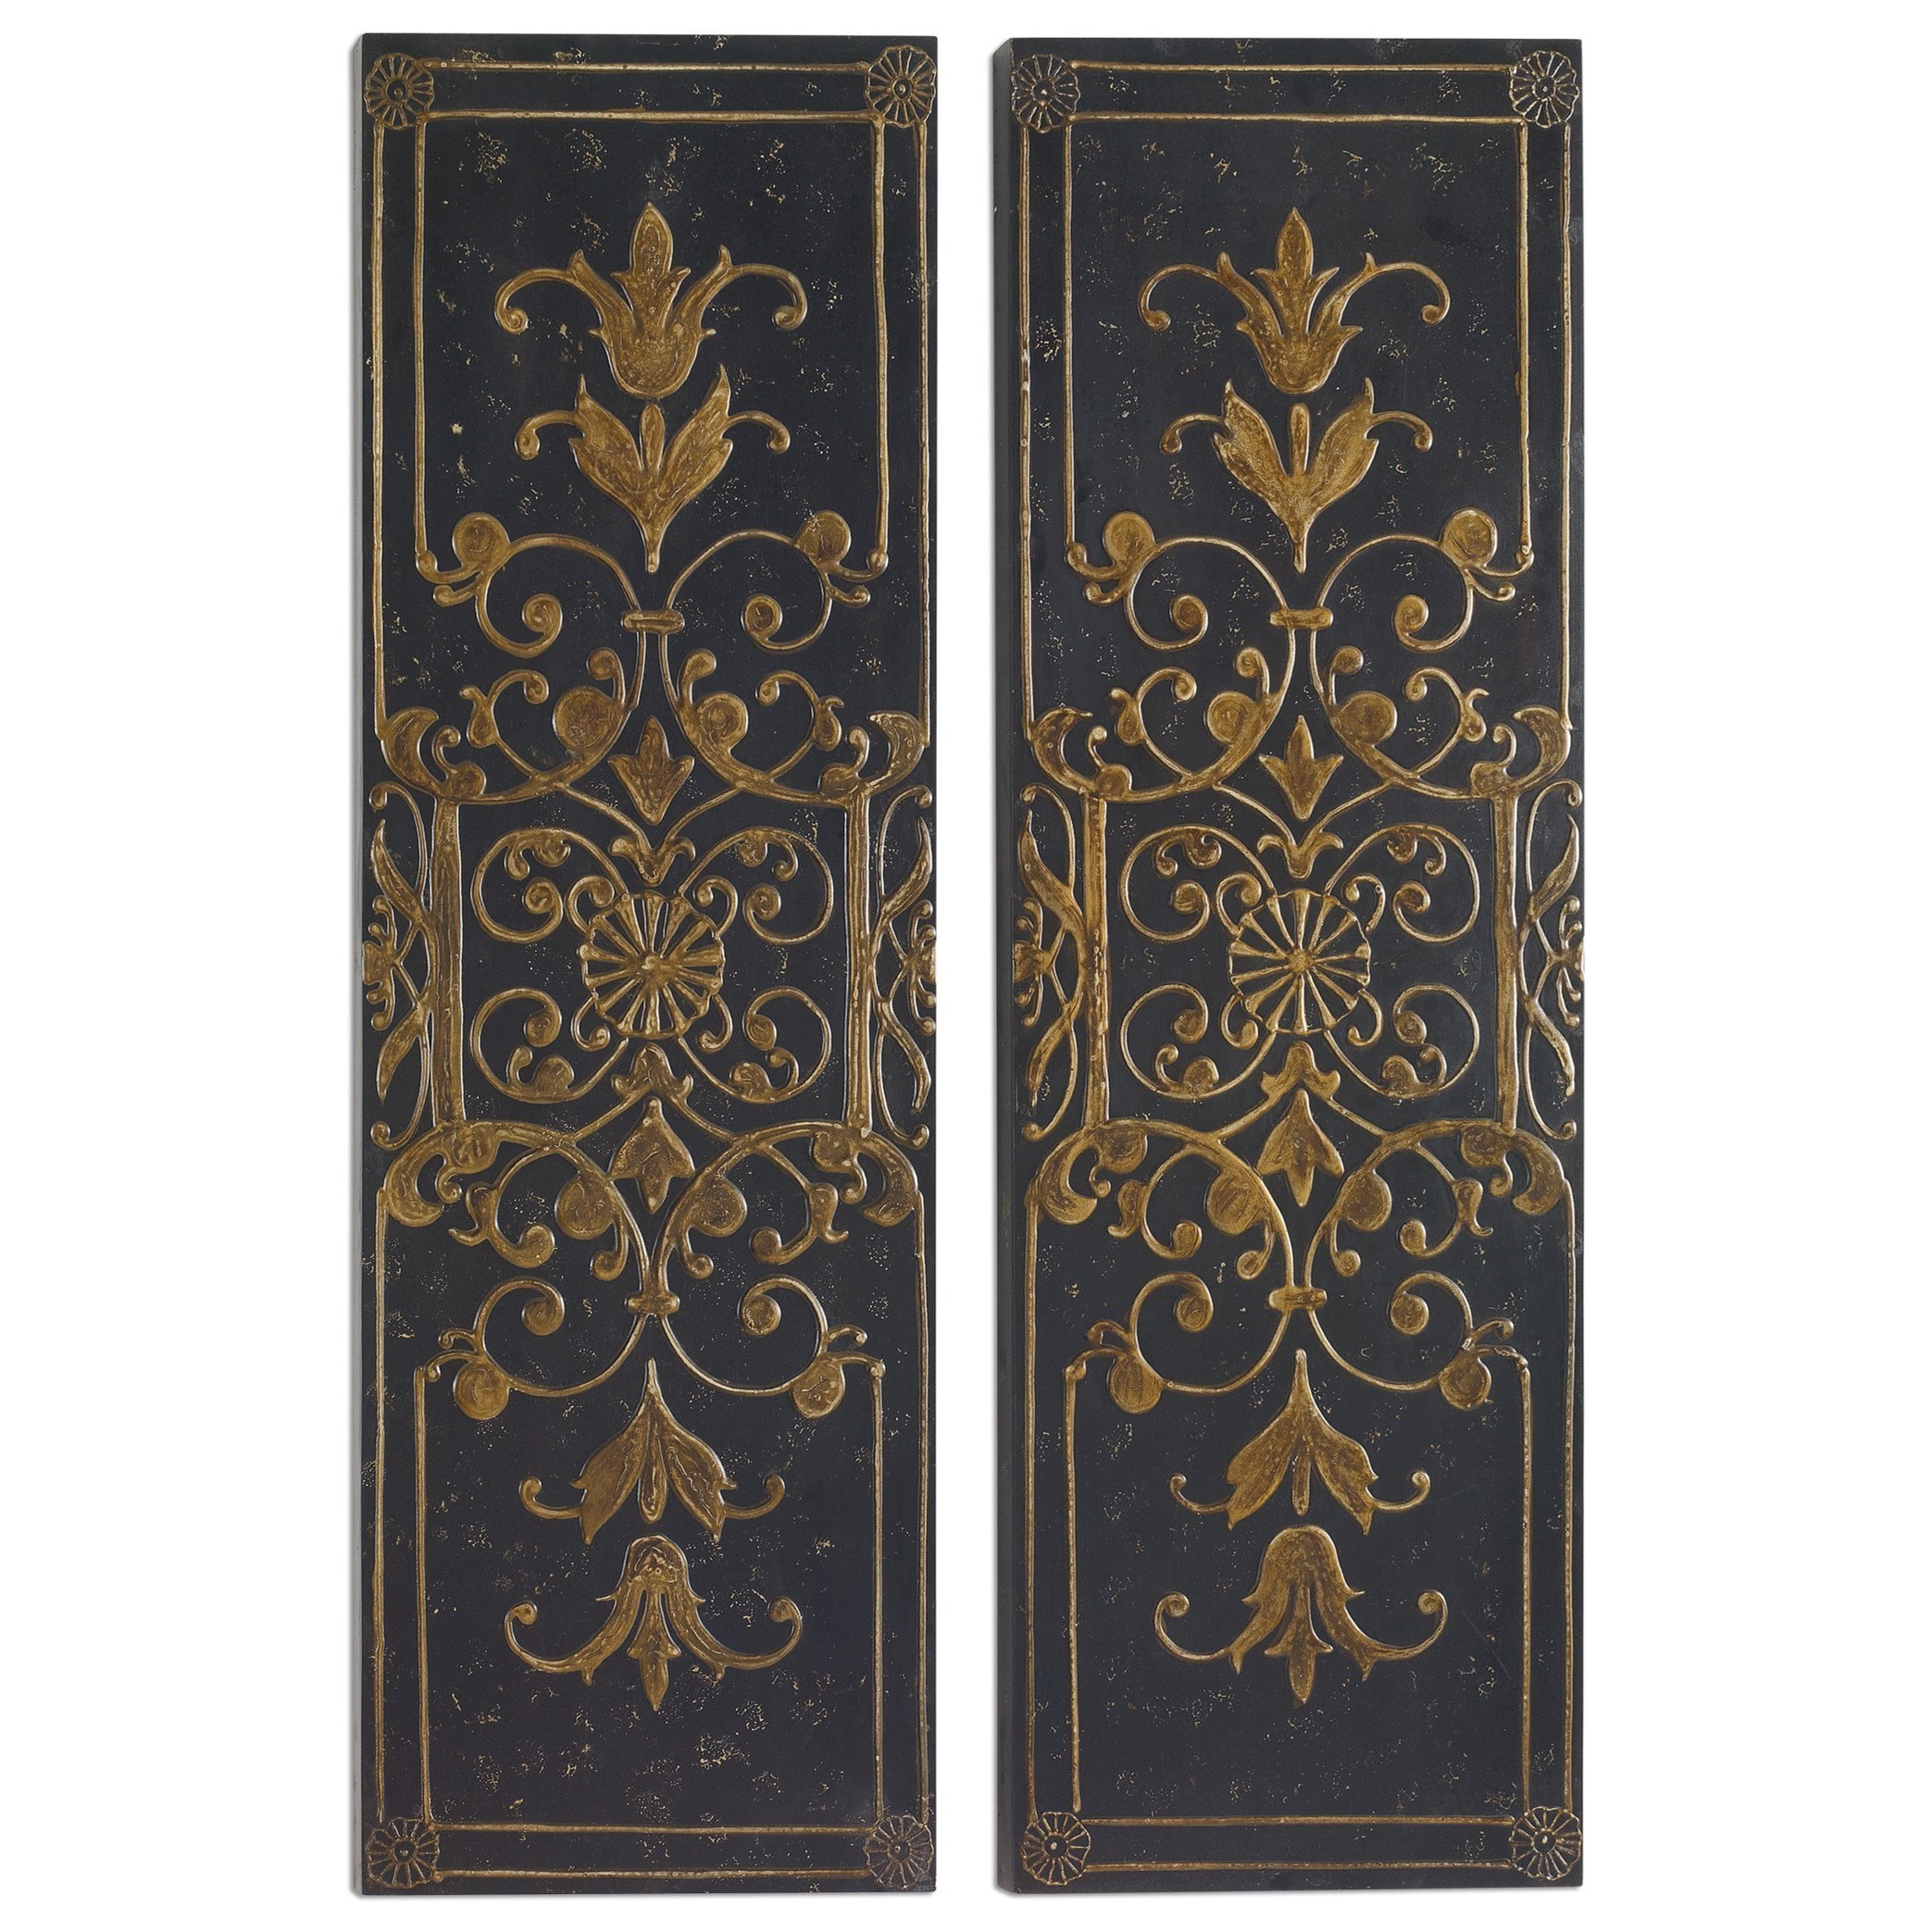 Awesome Uttermost Alternative Wall Decor Melani Decorative Panels S/2